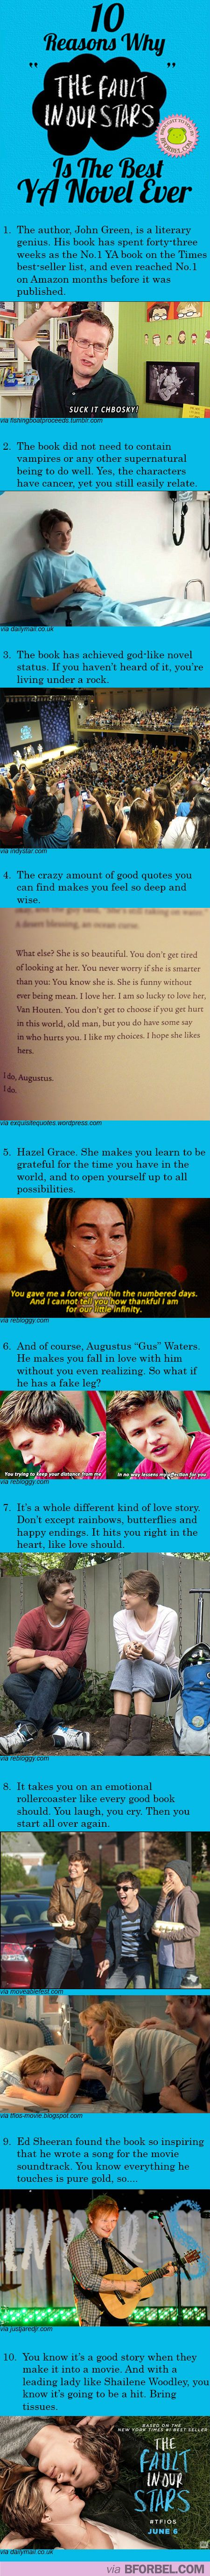 """10 Reasons Why """"The Fault In Our Stars"""" Is The Best Y.A. Novel Ever… AGREED"""